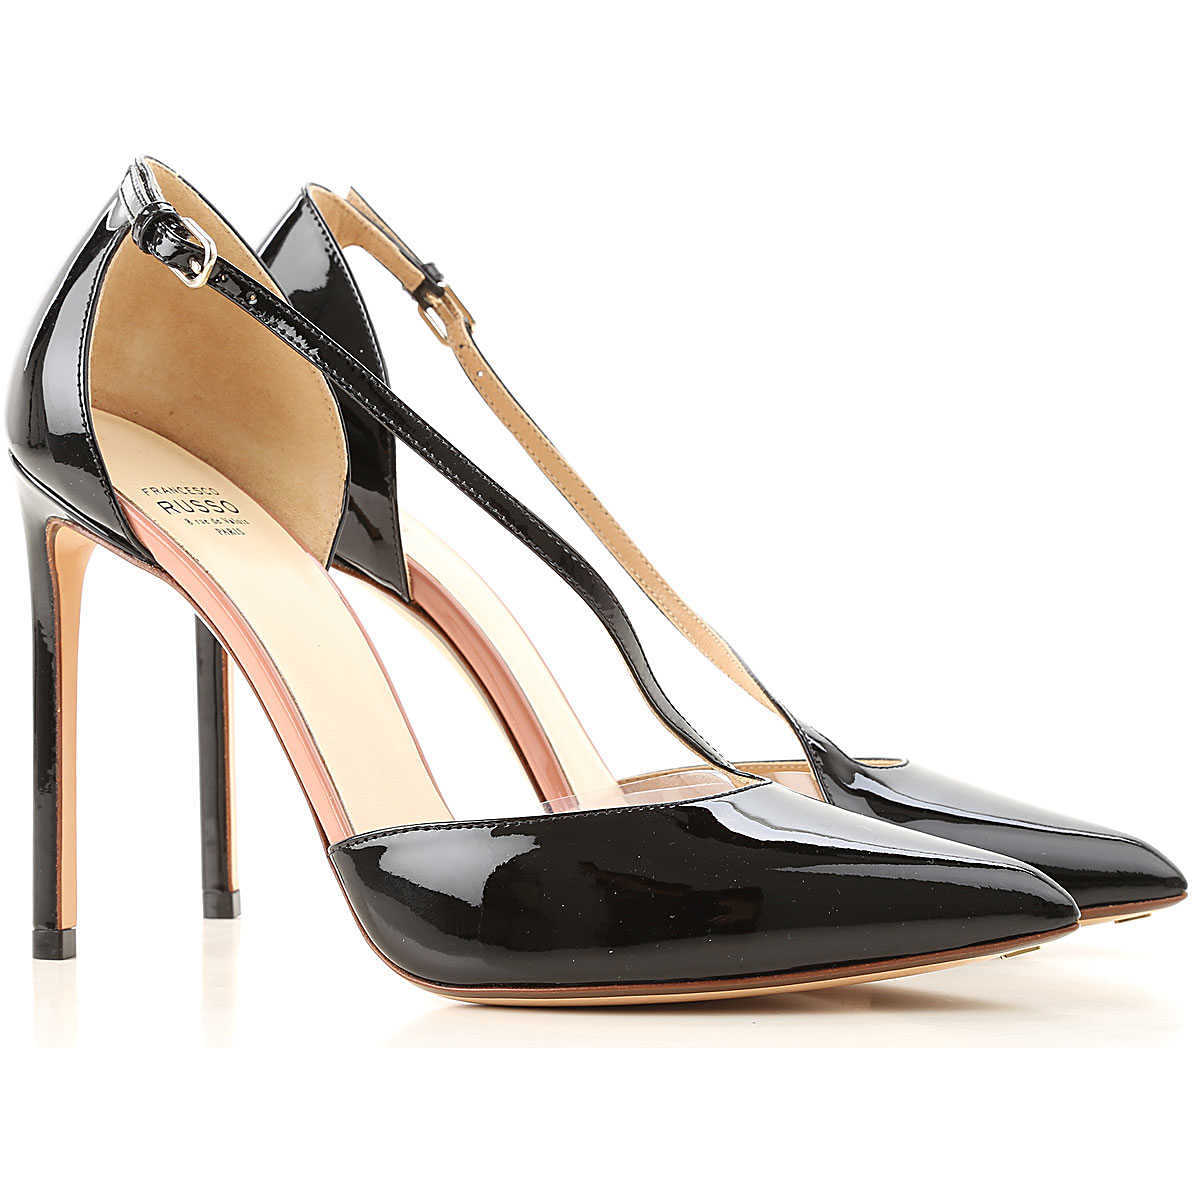 Francesco Russo Pumps & High Heels for Women in Outlet Black Canada - GOOFASH - Womens PUMPS